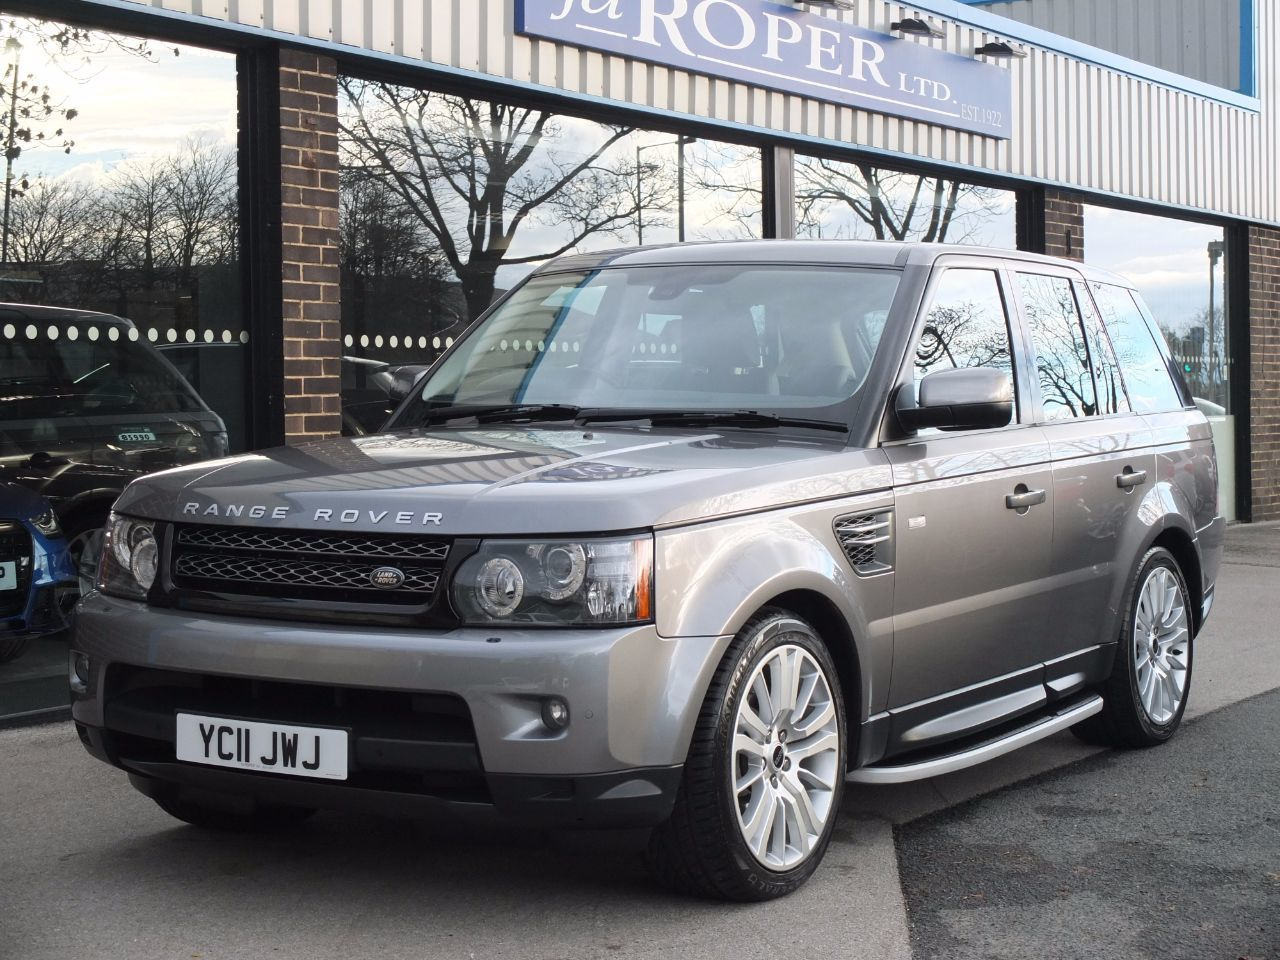 Land Rover Range Rover Sport 3.0 TDV6 HSE CommandShift Estate Diesel Stornoway Grey Metallic